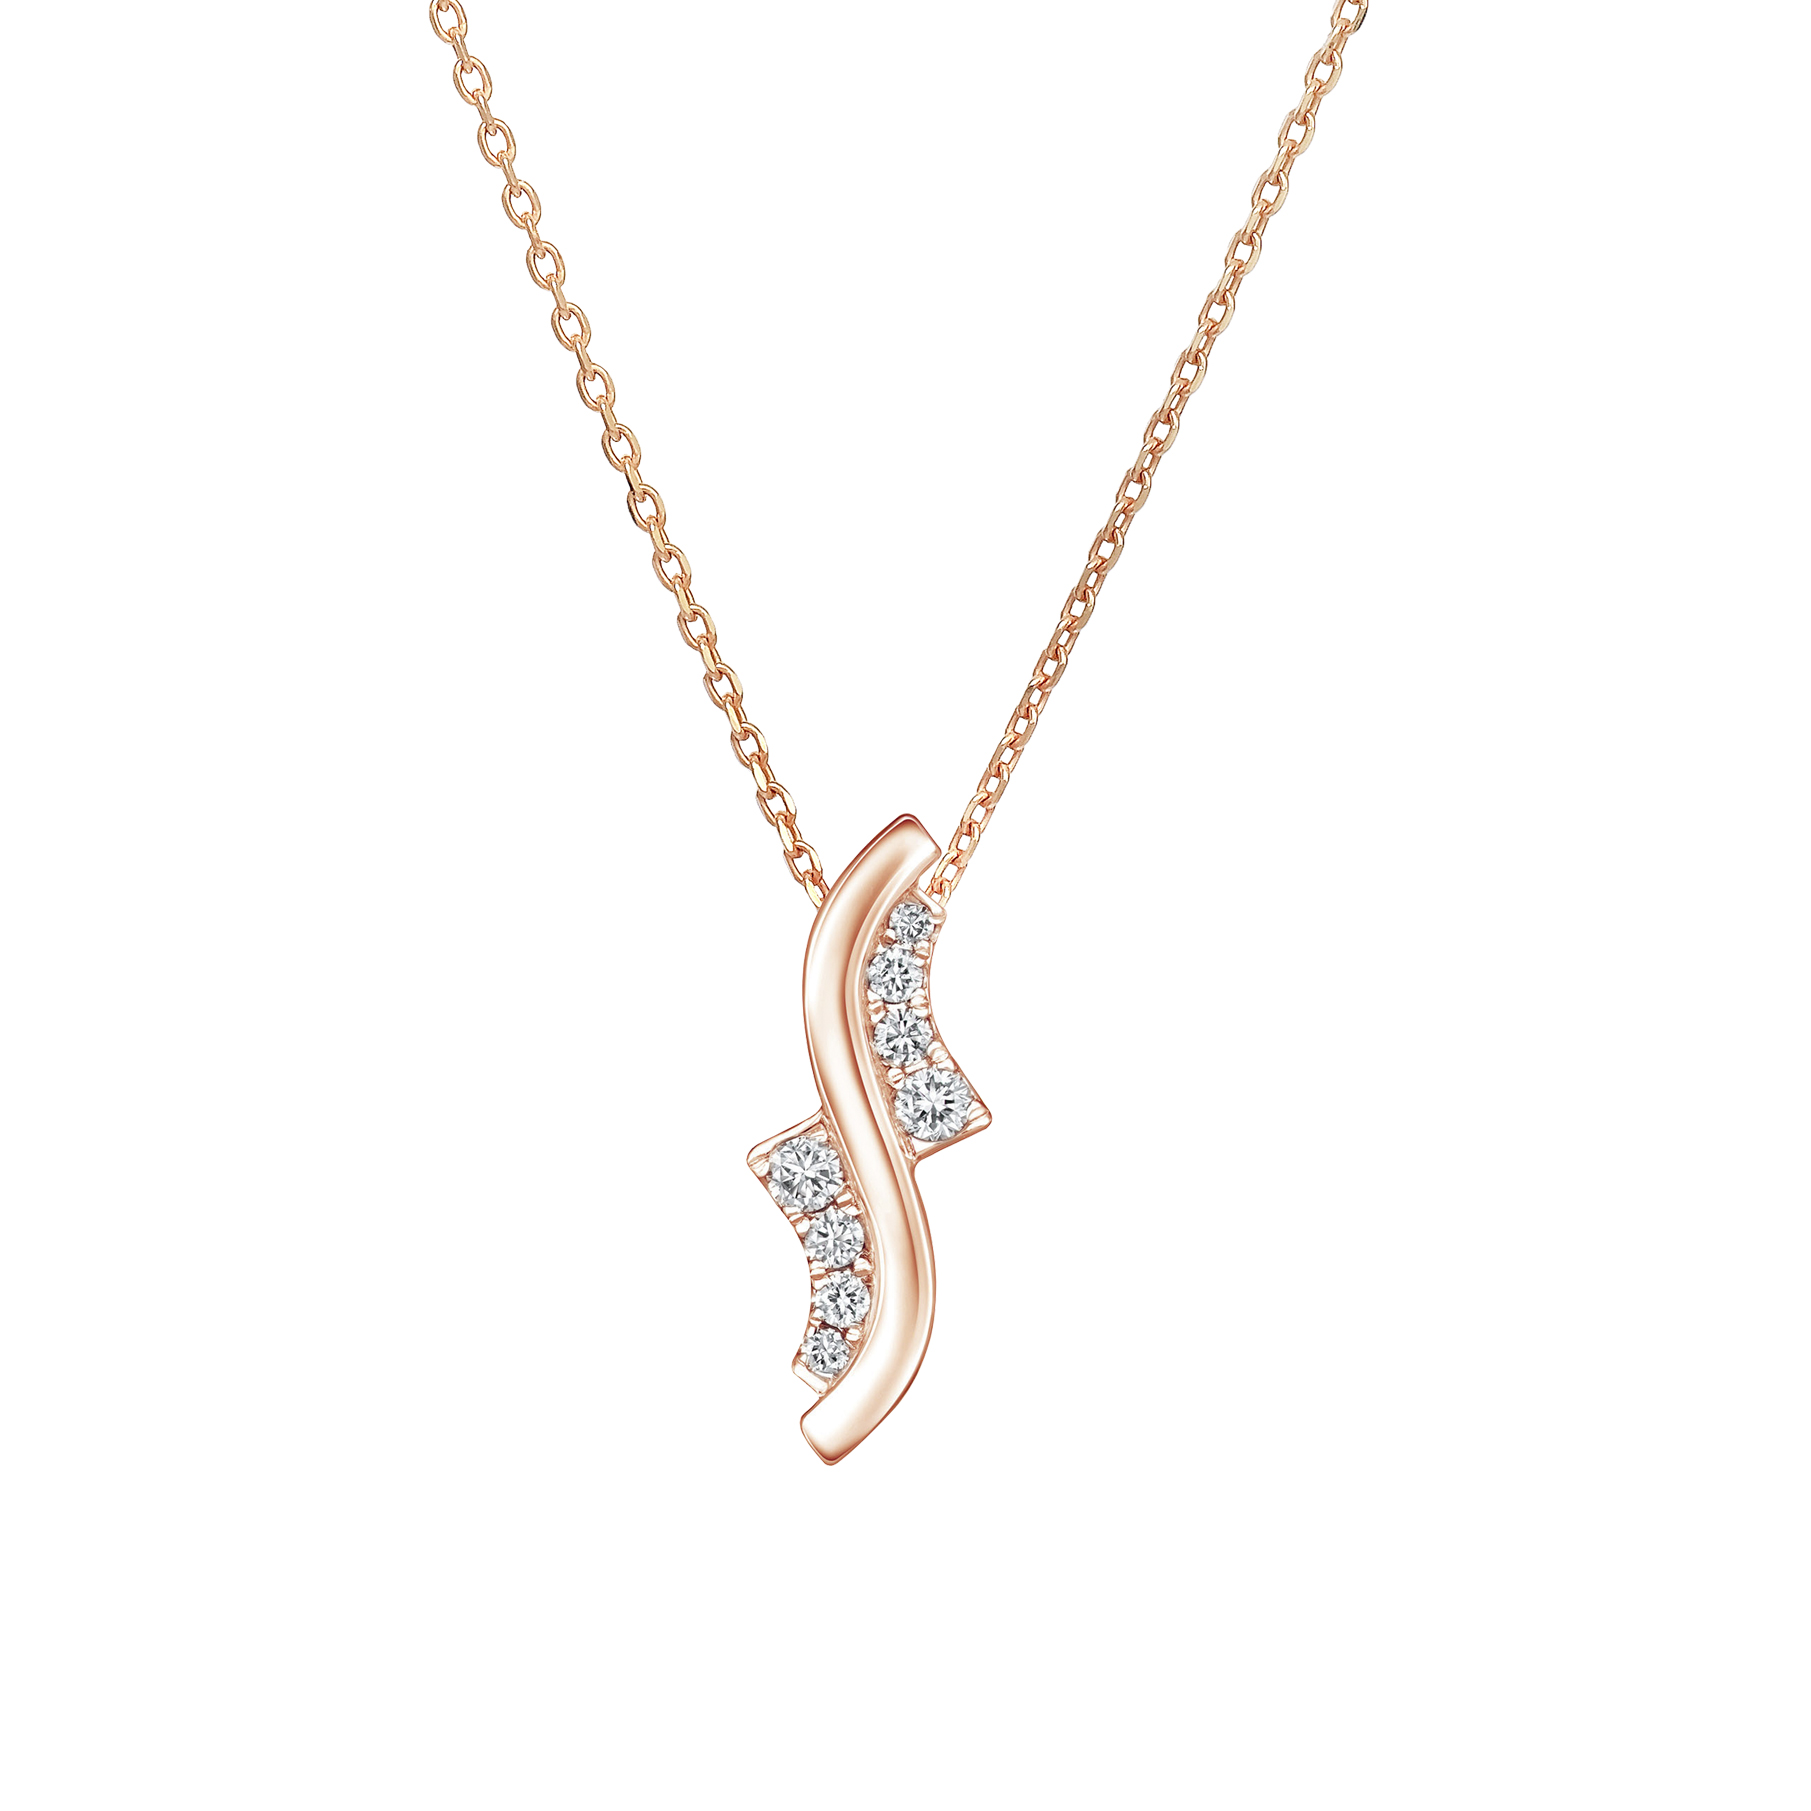 Soleluna AJYLE Dancing Wave Diamond Necklace